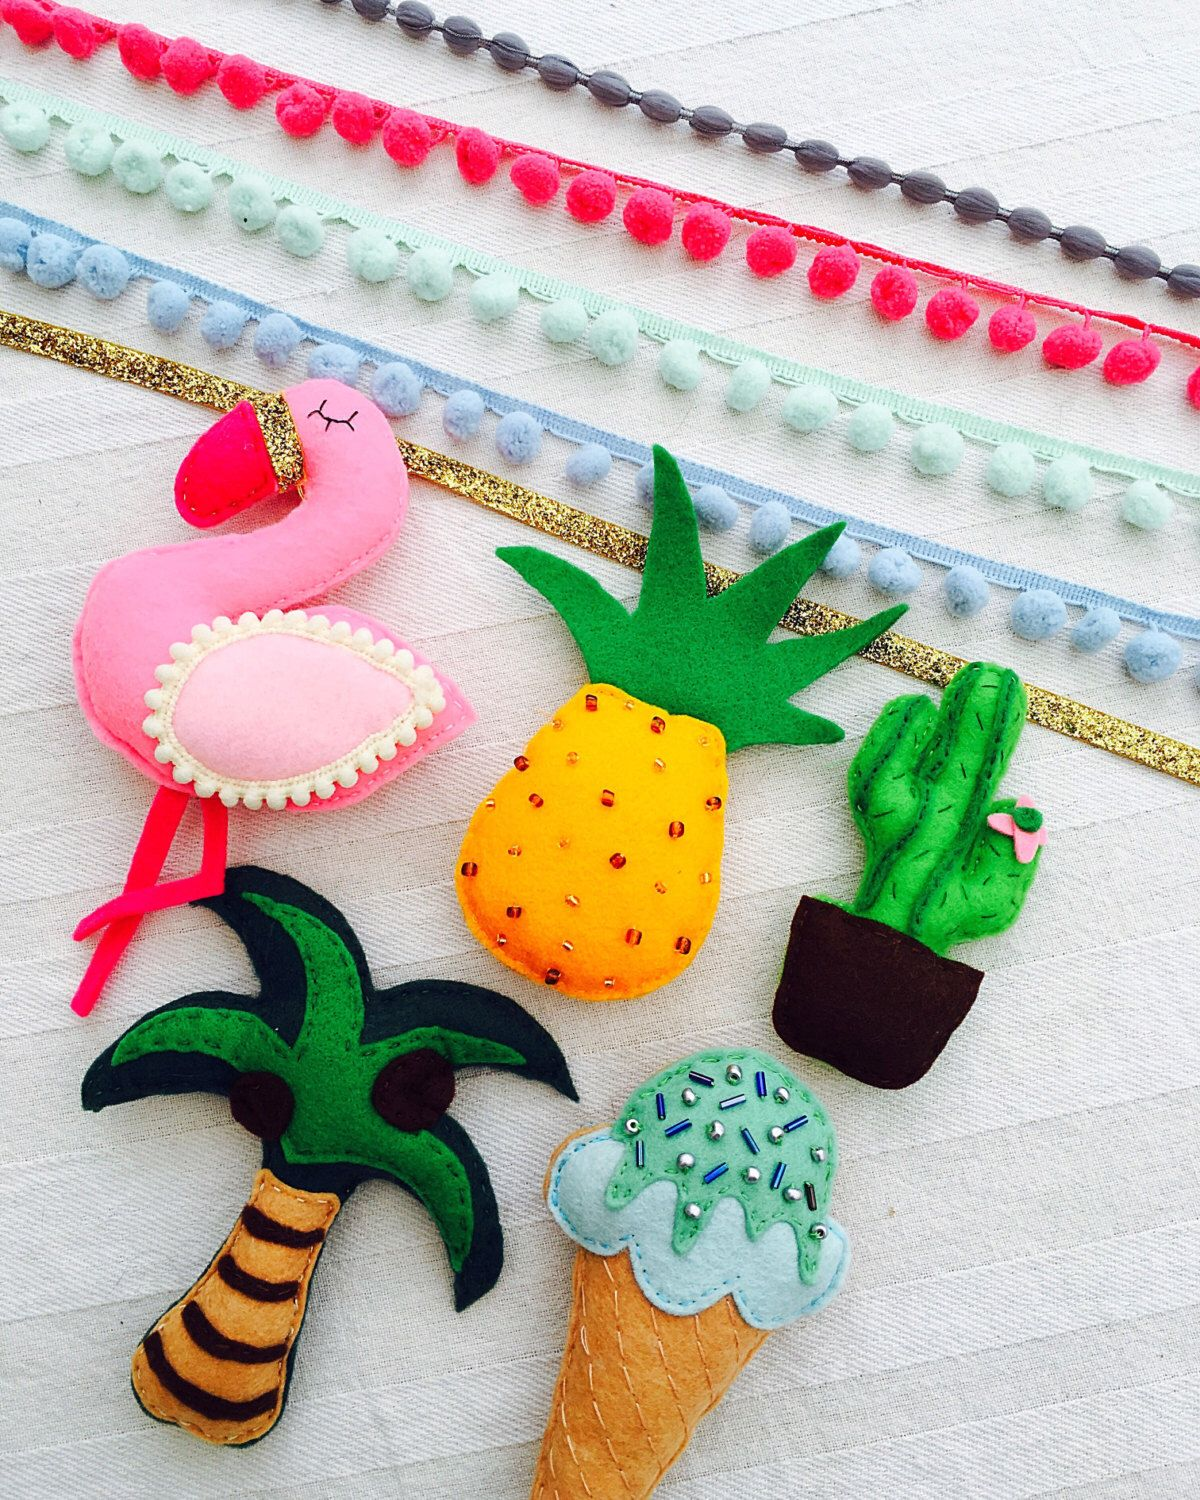 Summer themed felt garland/bunting/banner or wall hanging handmade to order with flamingos pineapples, palm trees and cactuses by TheFeltCo on Etsy https://www.etsy.com/listing/466450463/summer-themed-felt-garlandbuntingbanner